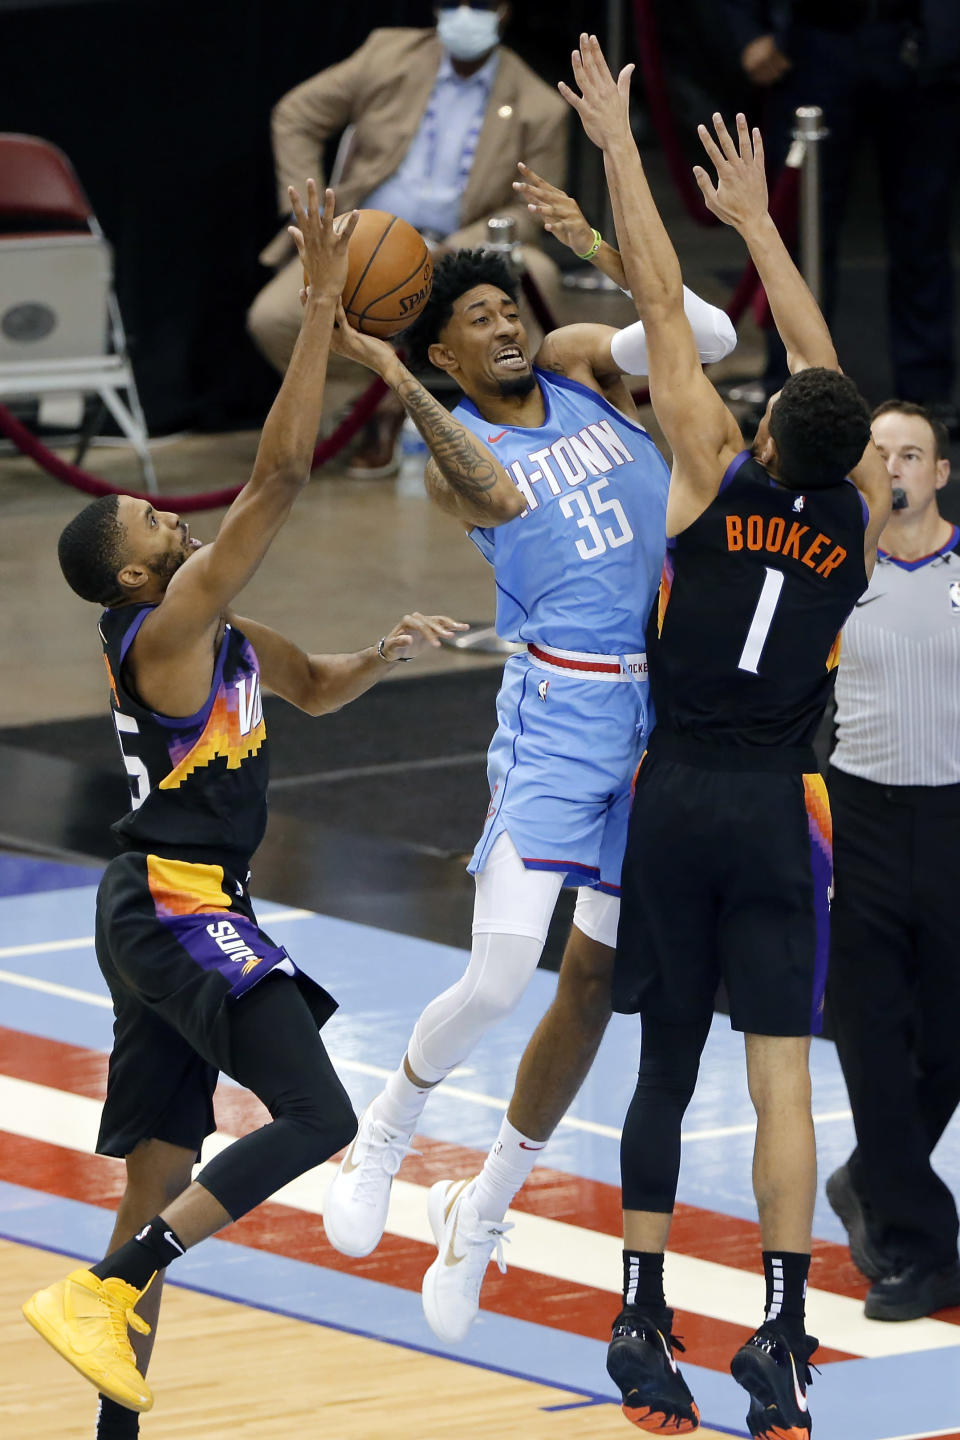 Houston Rockets center Christian Wood (35) shoots between Phoenix Suns forward Mikal Bridges, left, and guard Devin Booker (1) during the second half of an NBA basketball game Wednesday, Jan. 20, 2021, in Houston. (AP Photo/Michael Wyke)